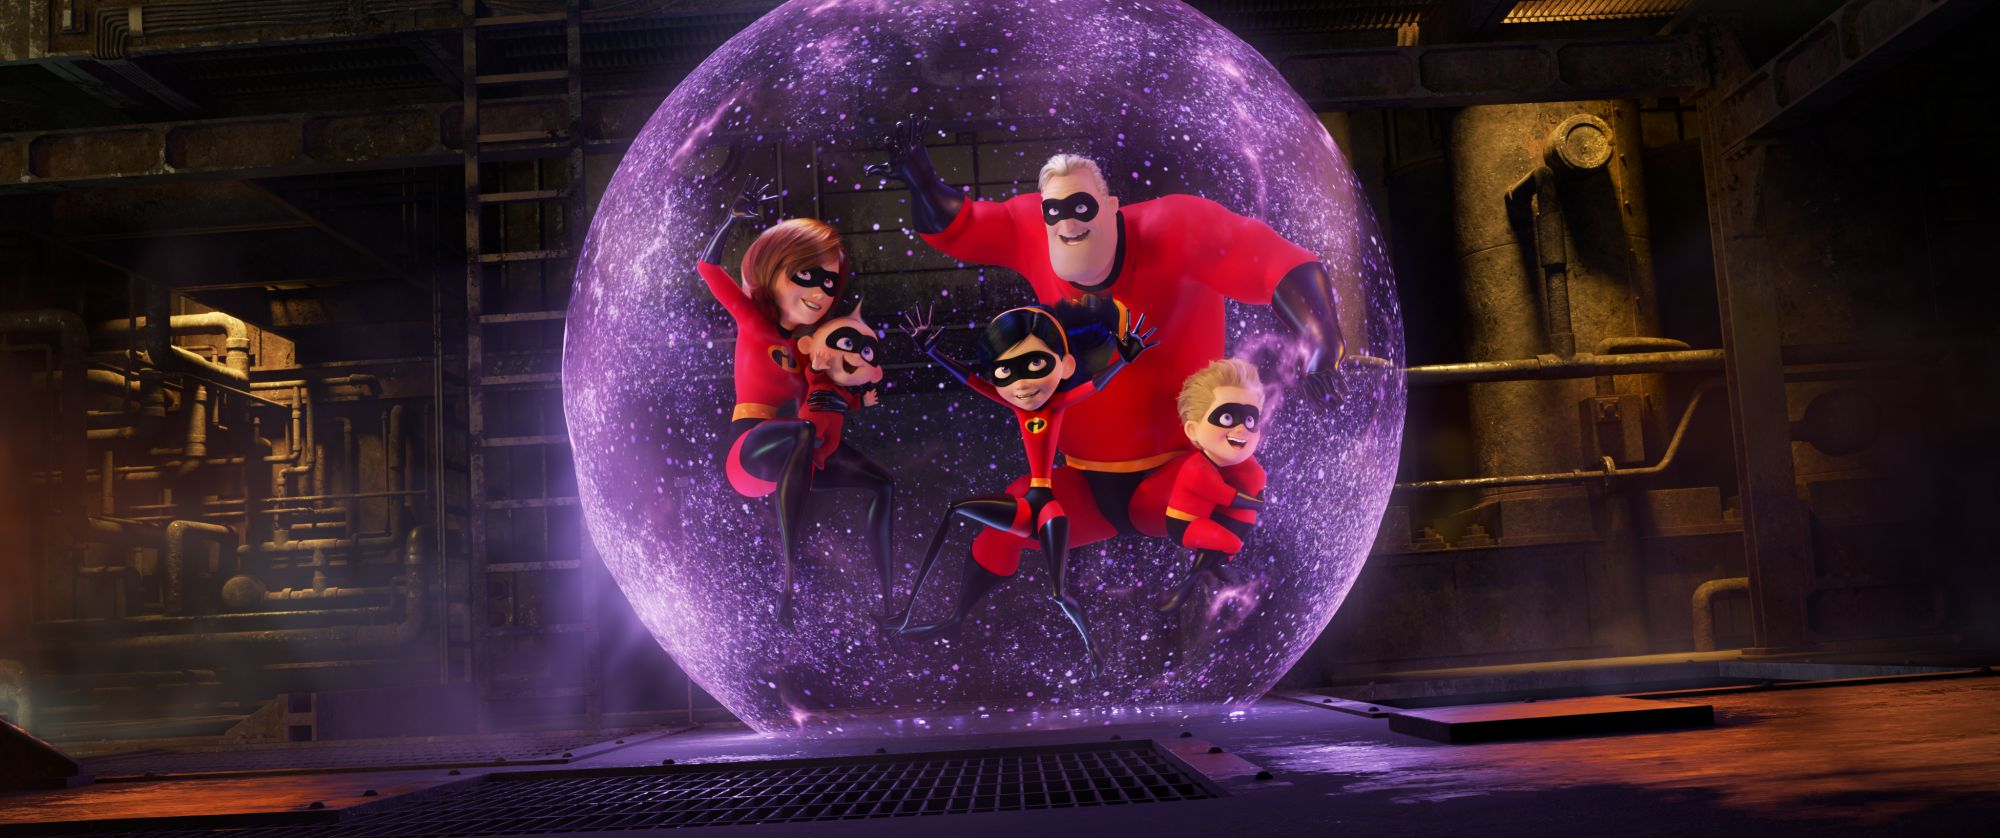 "PRACTICE MAKES PERFECT – Disney•Pixar's ""Incredibles 2"" busts into theaters on June 15, 2018. ©2018 Disney•Pixar. All Rights Reserved."